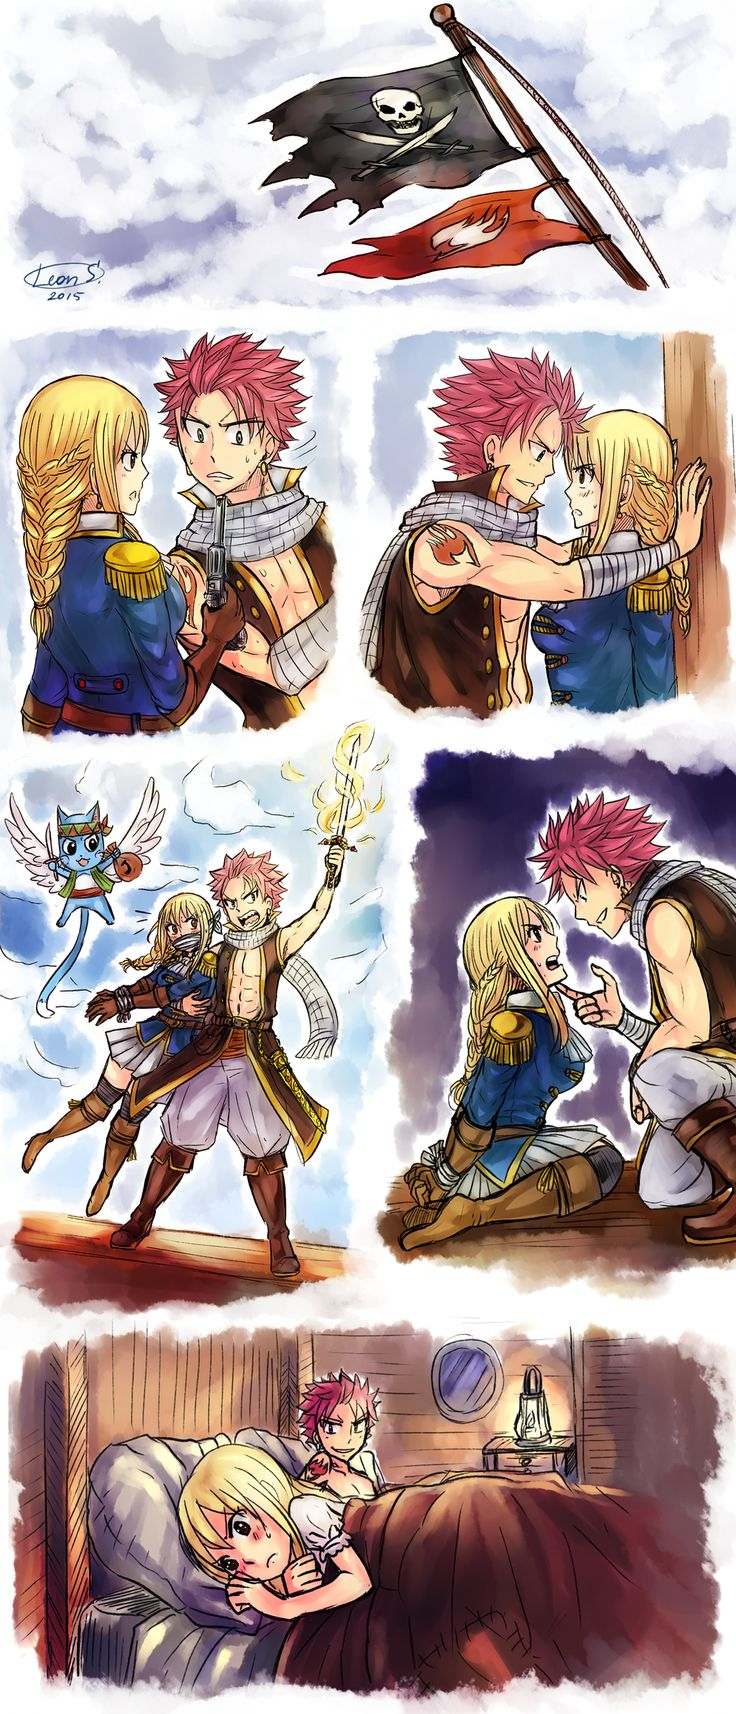 Au pirates nalu 2 by leons on - Jeu de fairy tail gratuit ...